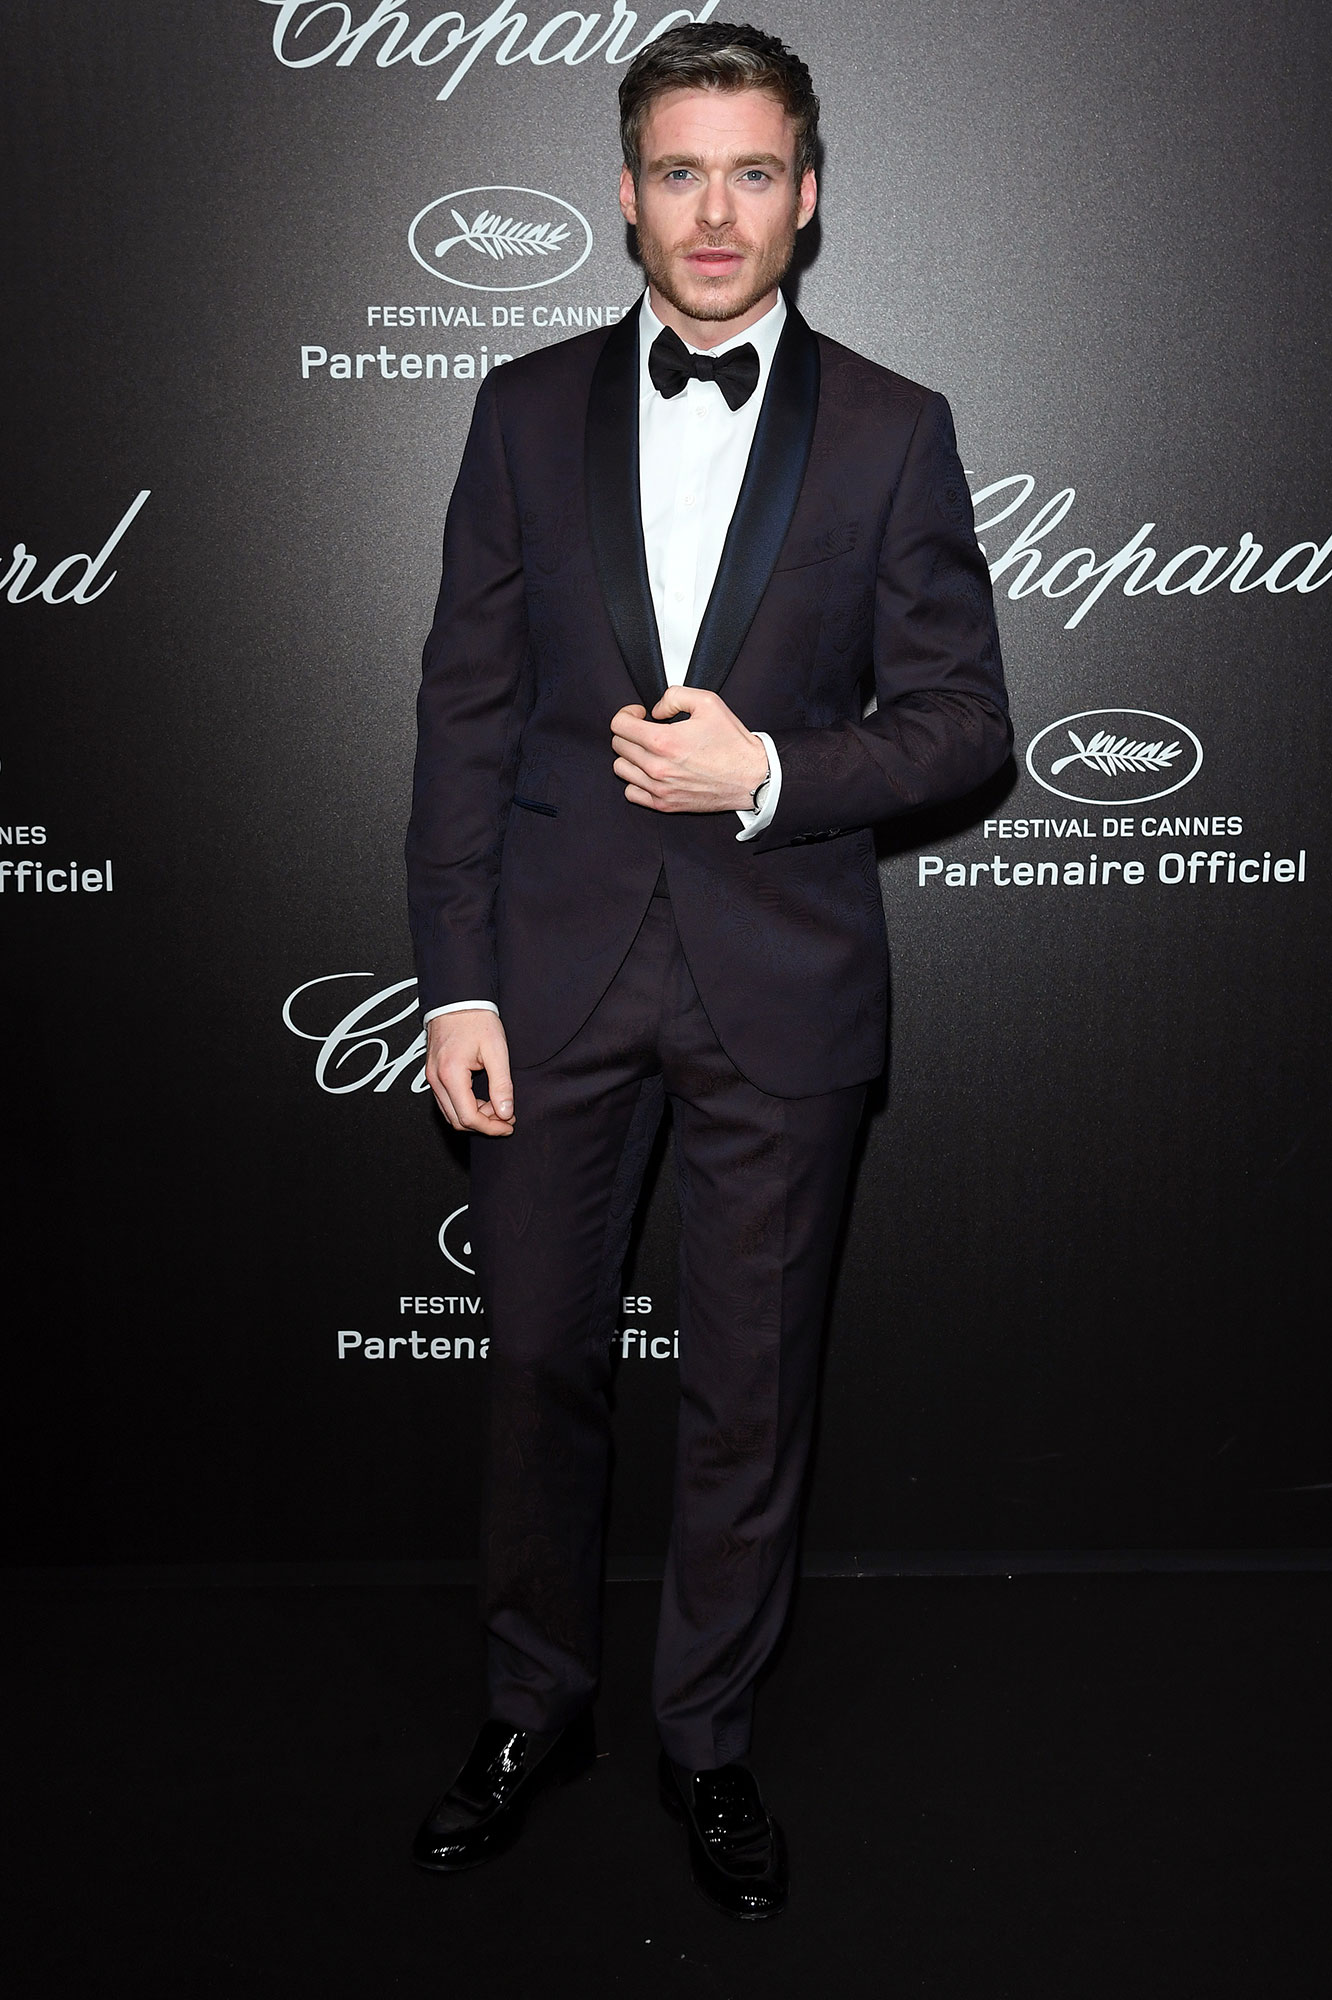 Richard Madden Cannes Film Festival 2019 Most Stylish Guys Red Carpet - The actor looked dapper in a black bowtie at the Chopard Love Night on Friday, May 17.